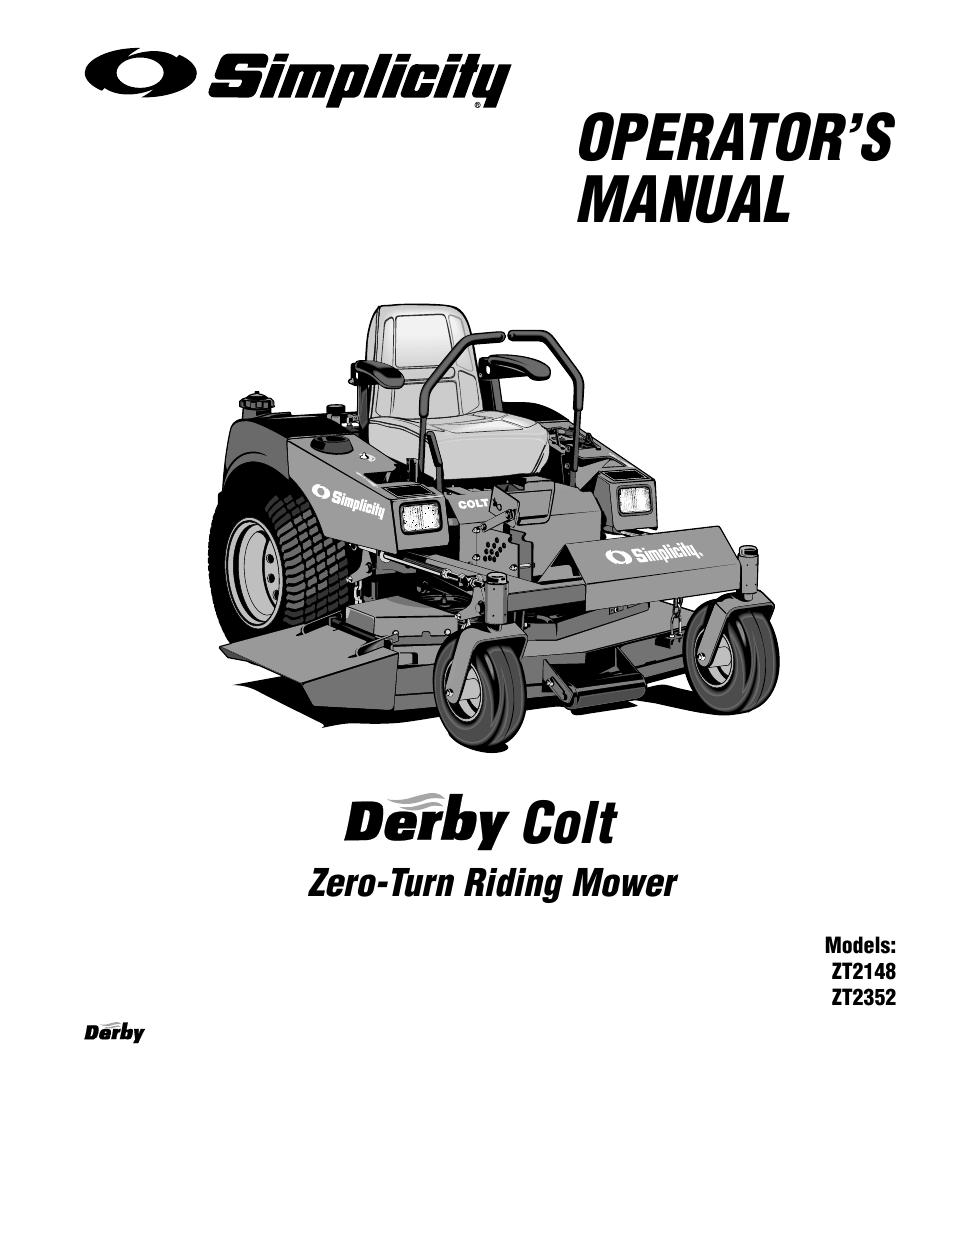 Operator's manual, Colt, Zero-turn riding mower